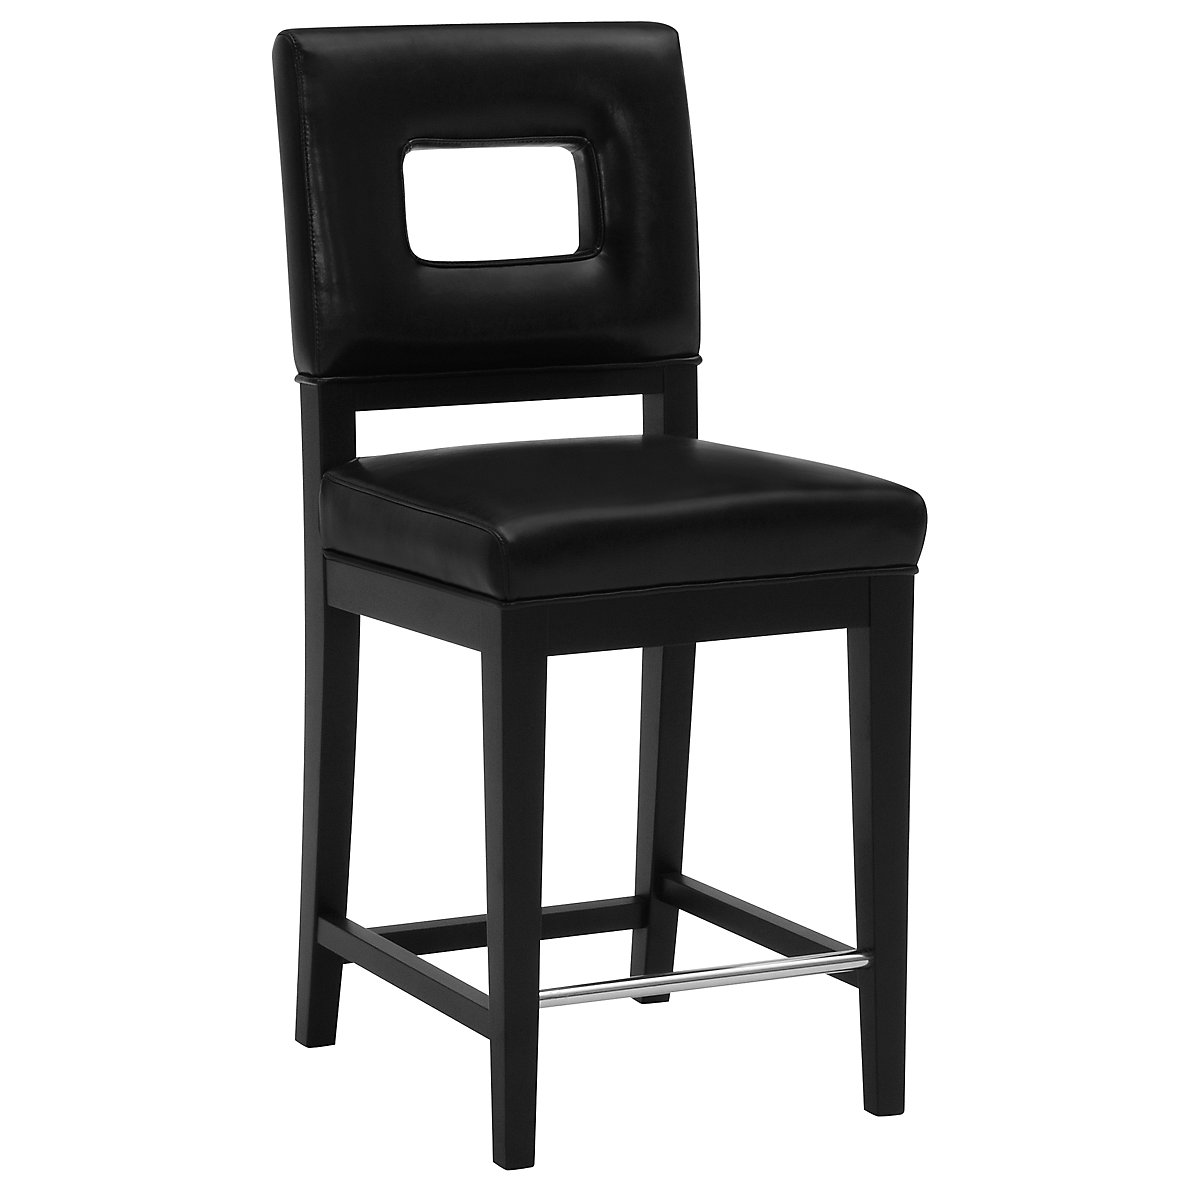 "Aspen Black 24"" Bonded Leather Barstool"